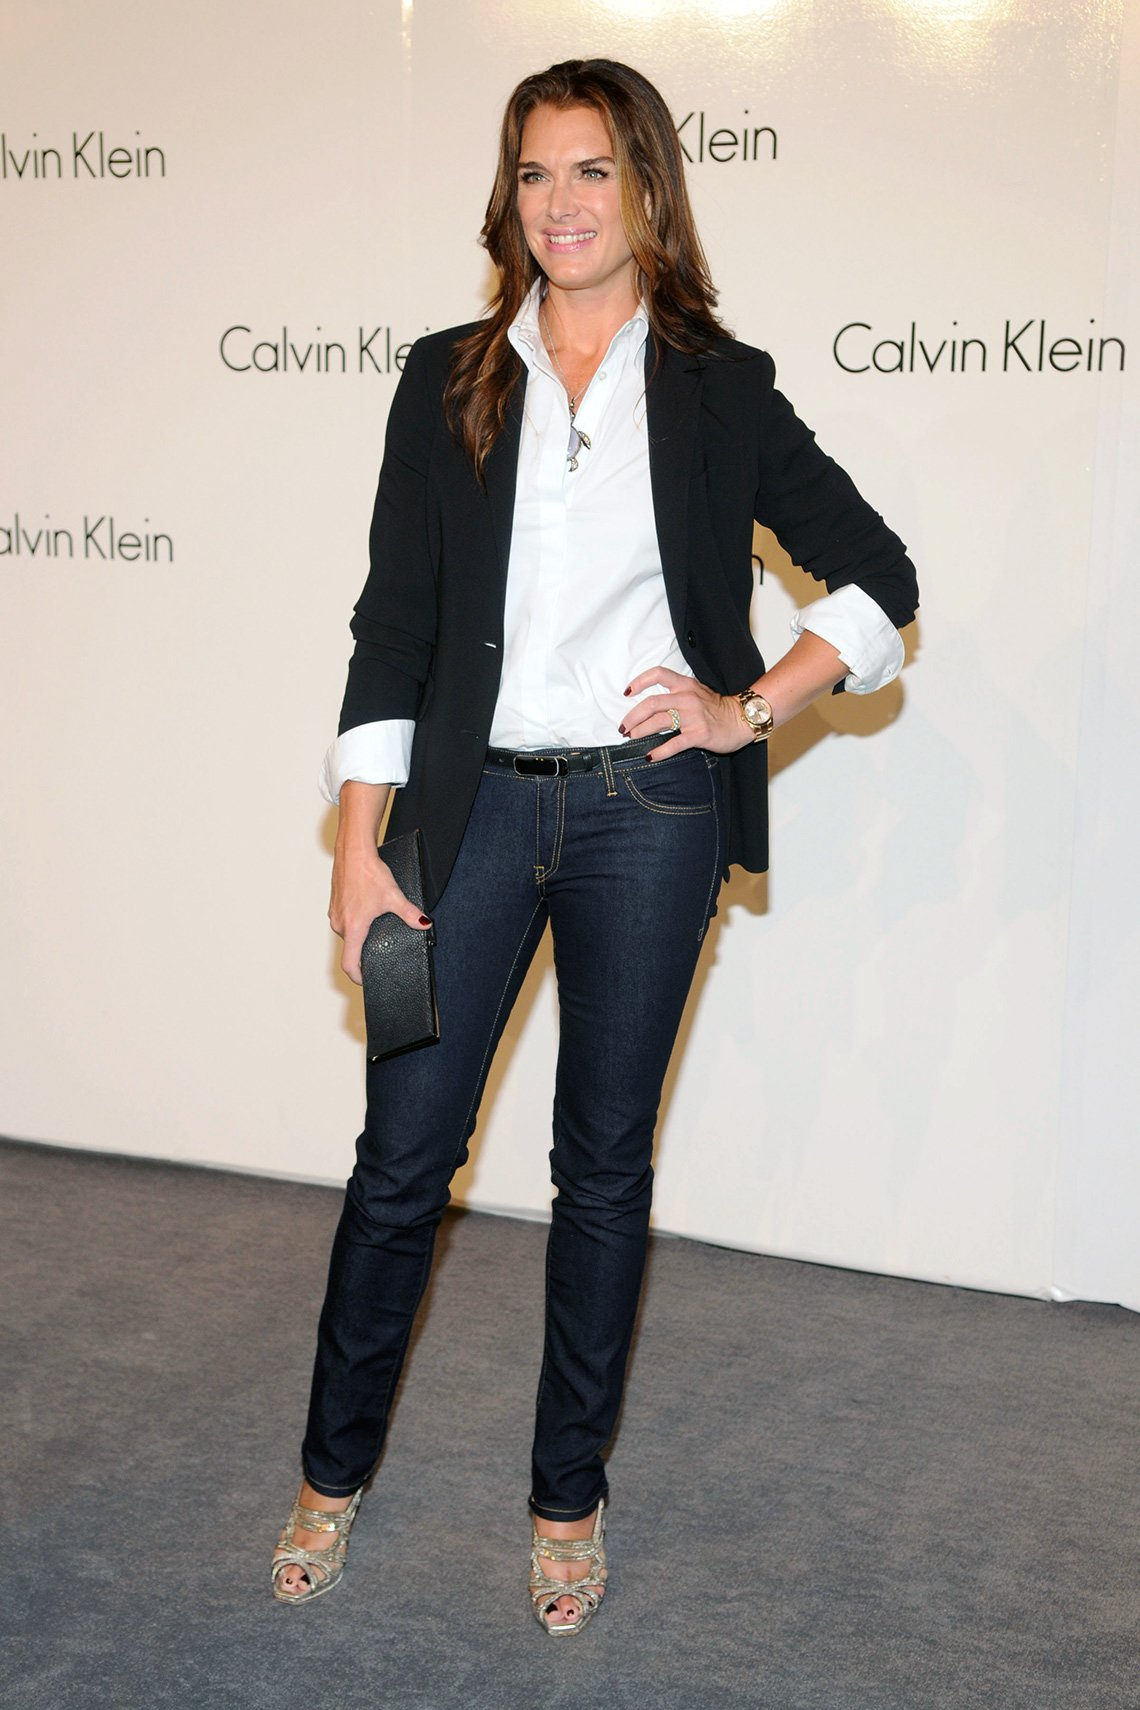 item 3, Gallery image. Brooke Shields usando jeans.